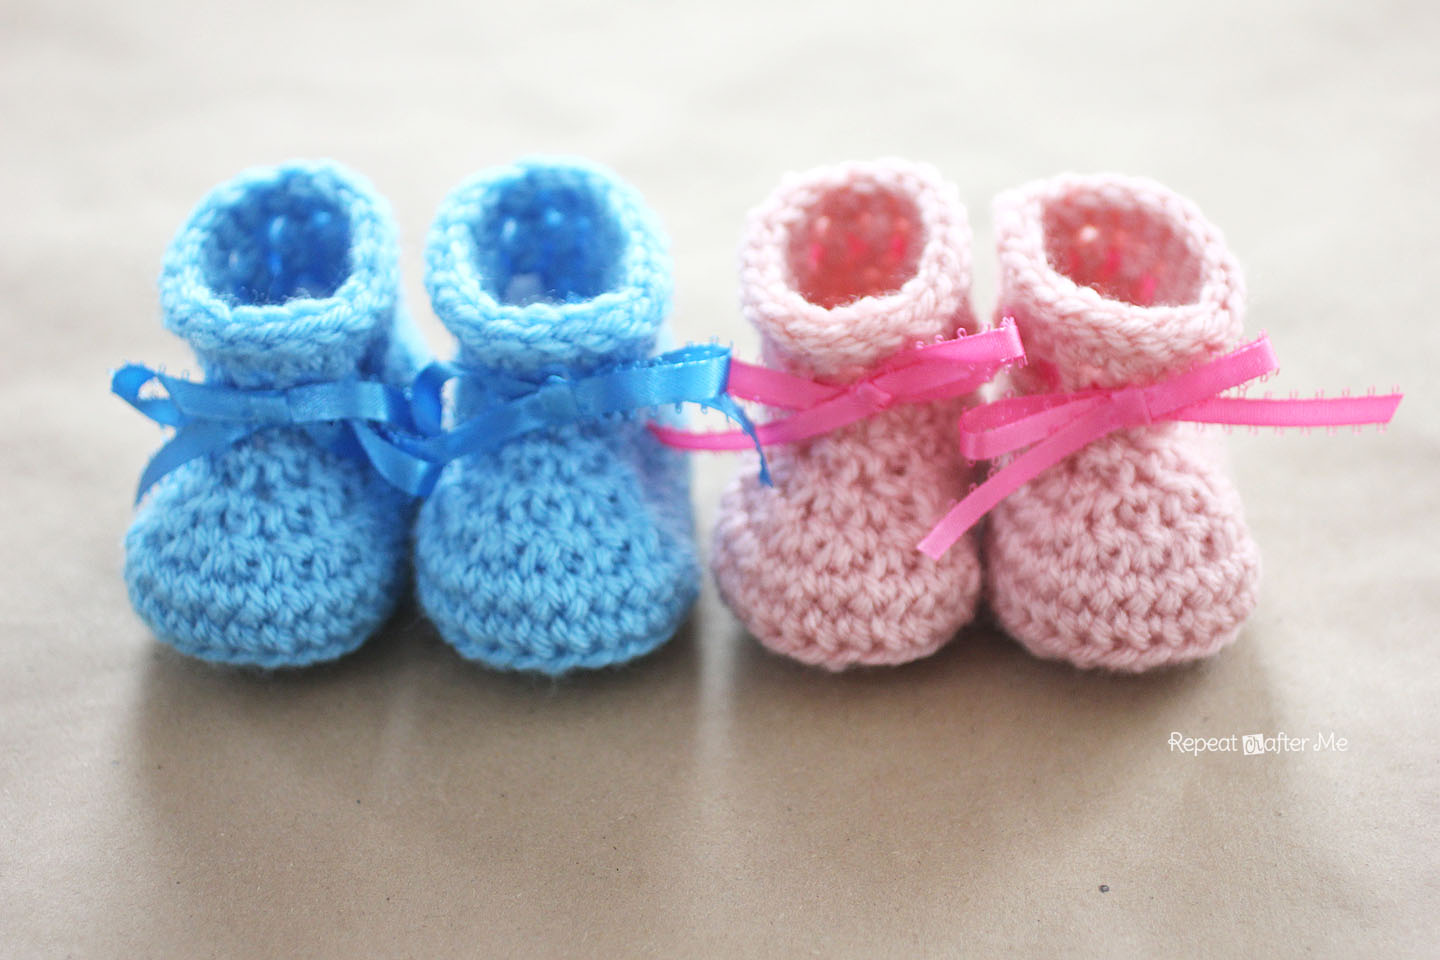 Www All Free Crochet Com : Crochet Newborn Baby Booties Pattern - Repeat Crafter Me